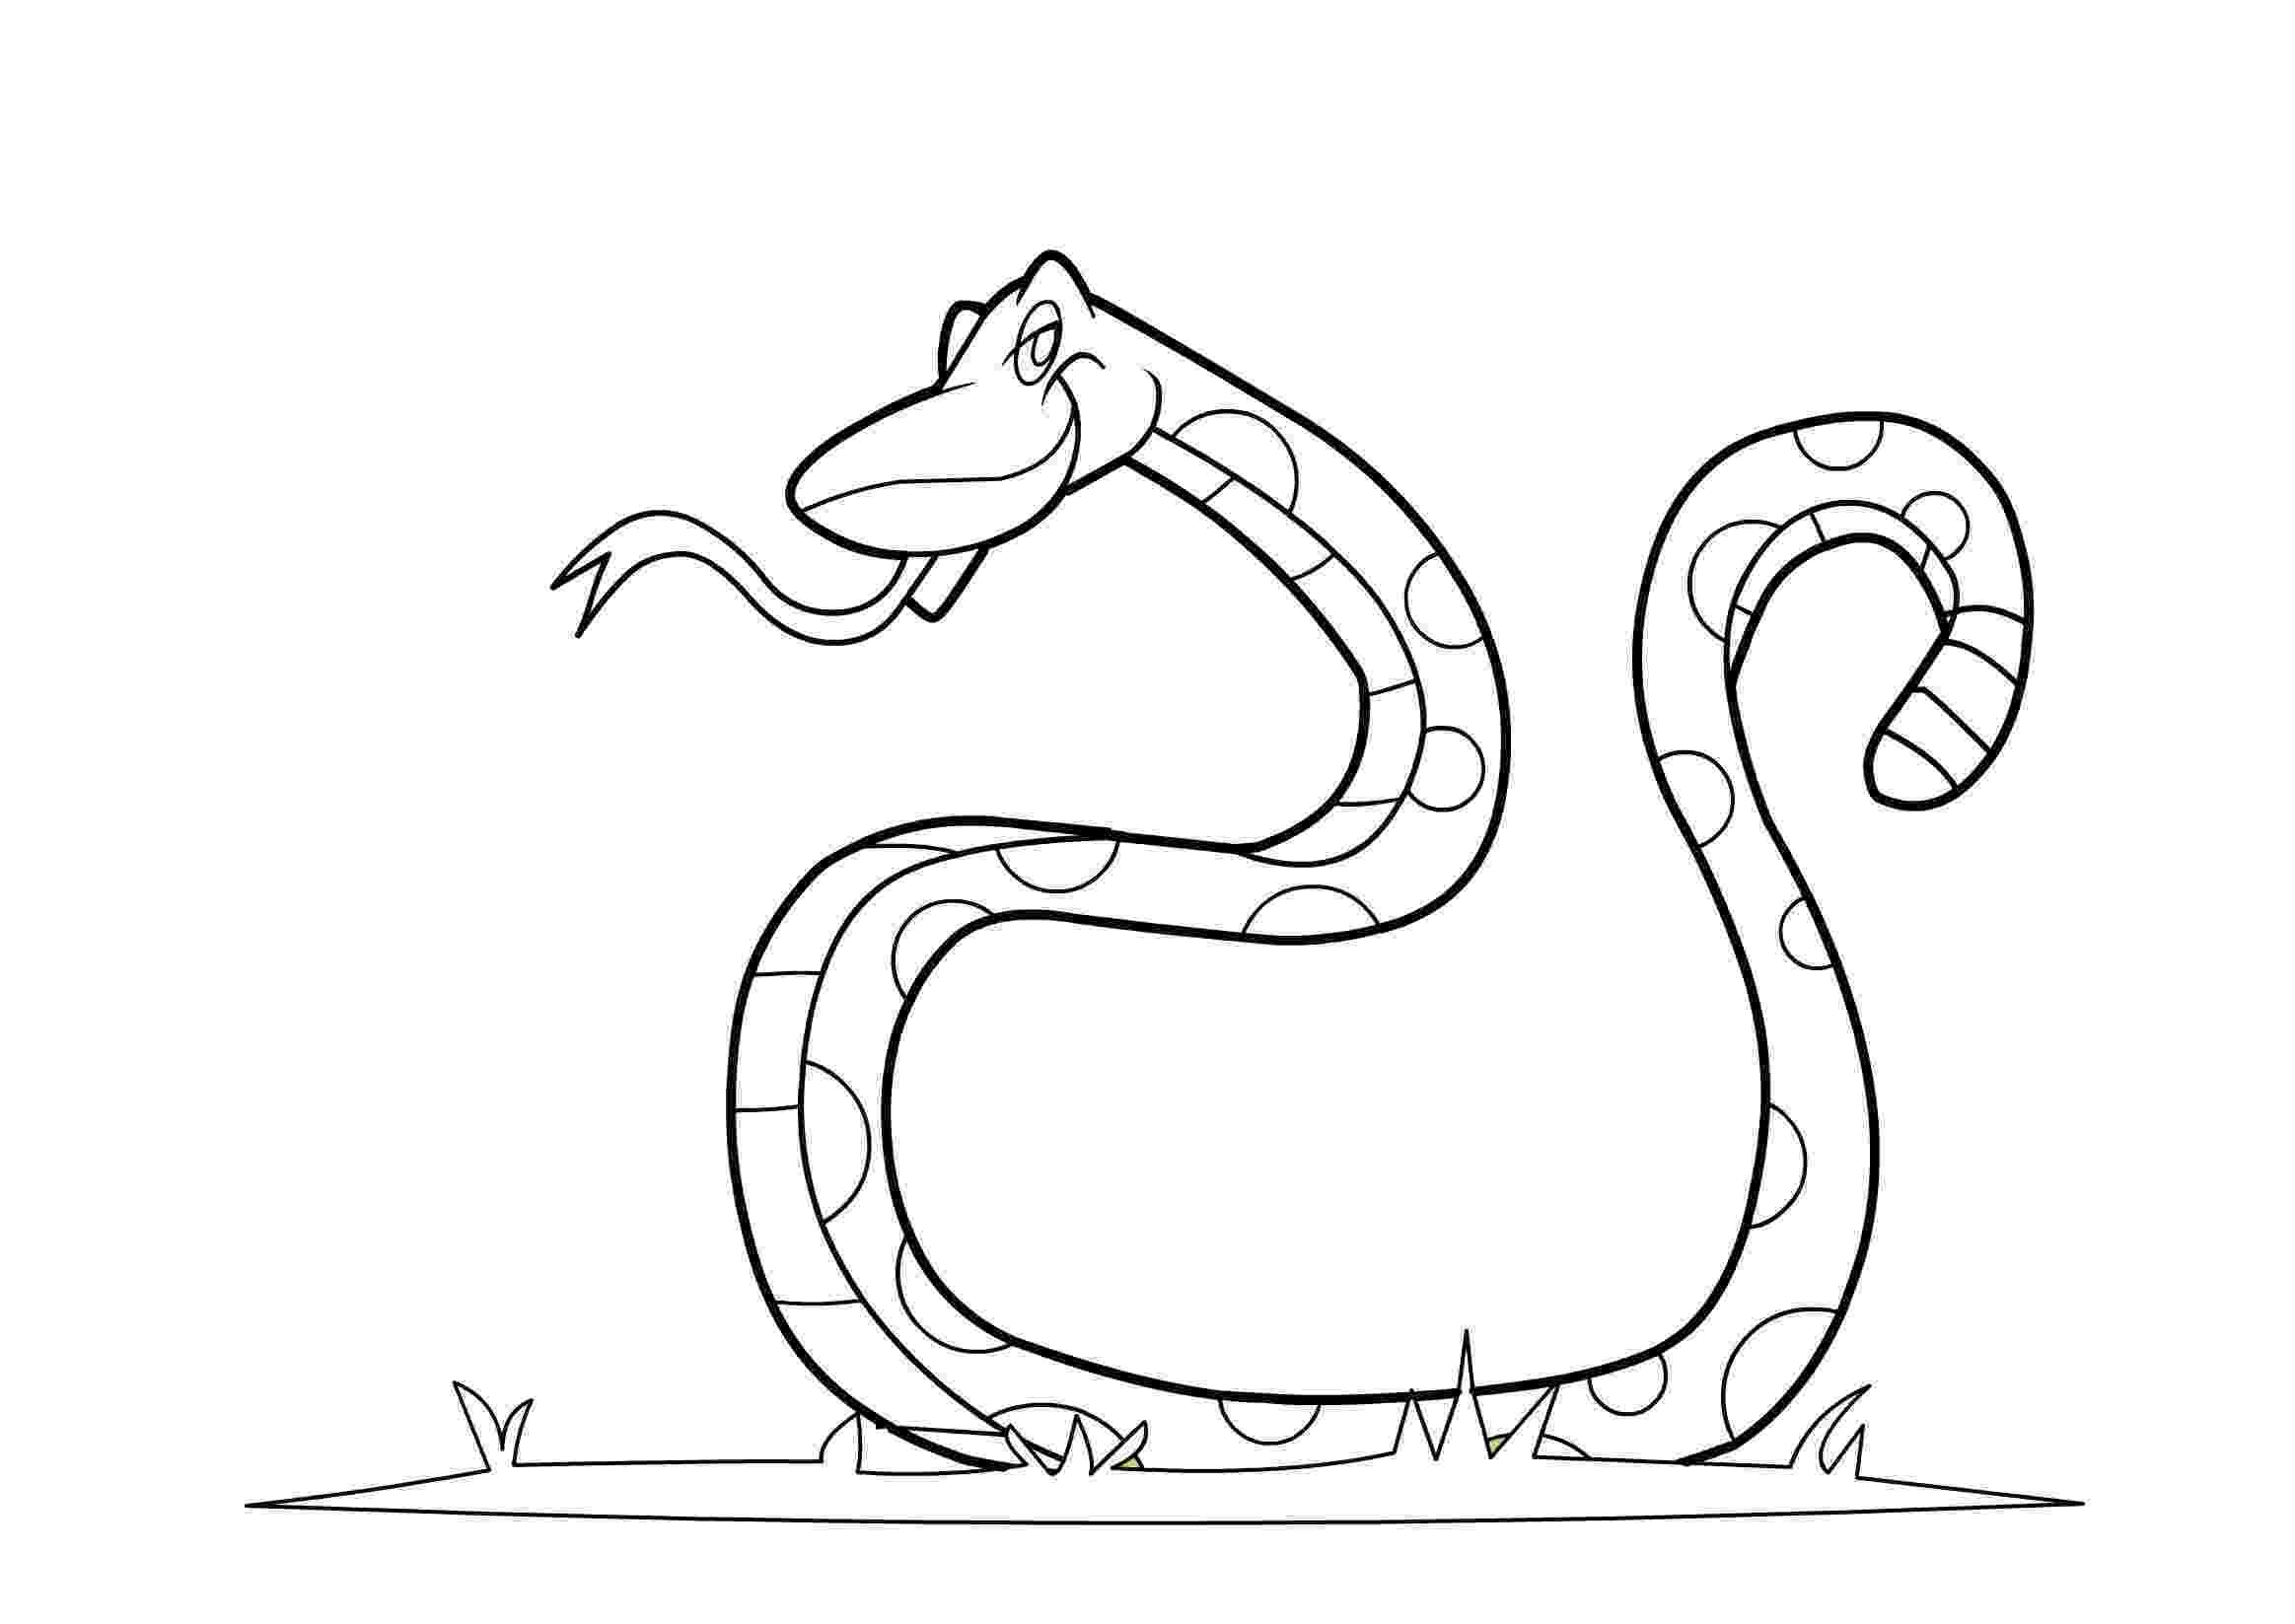 coloring page snake snake coloring pages free for children page snake coloring